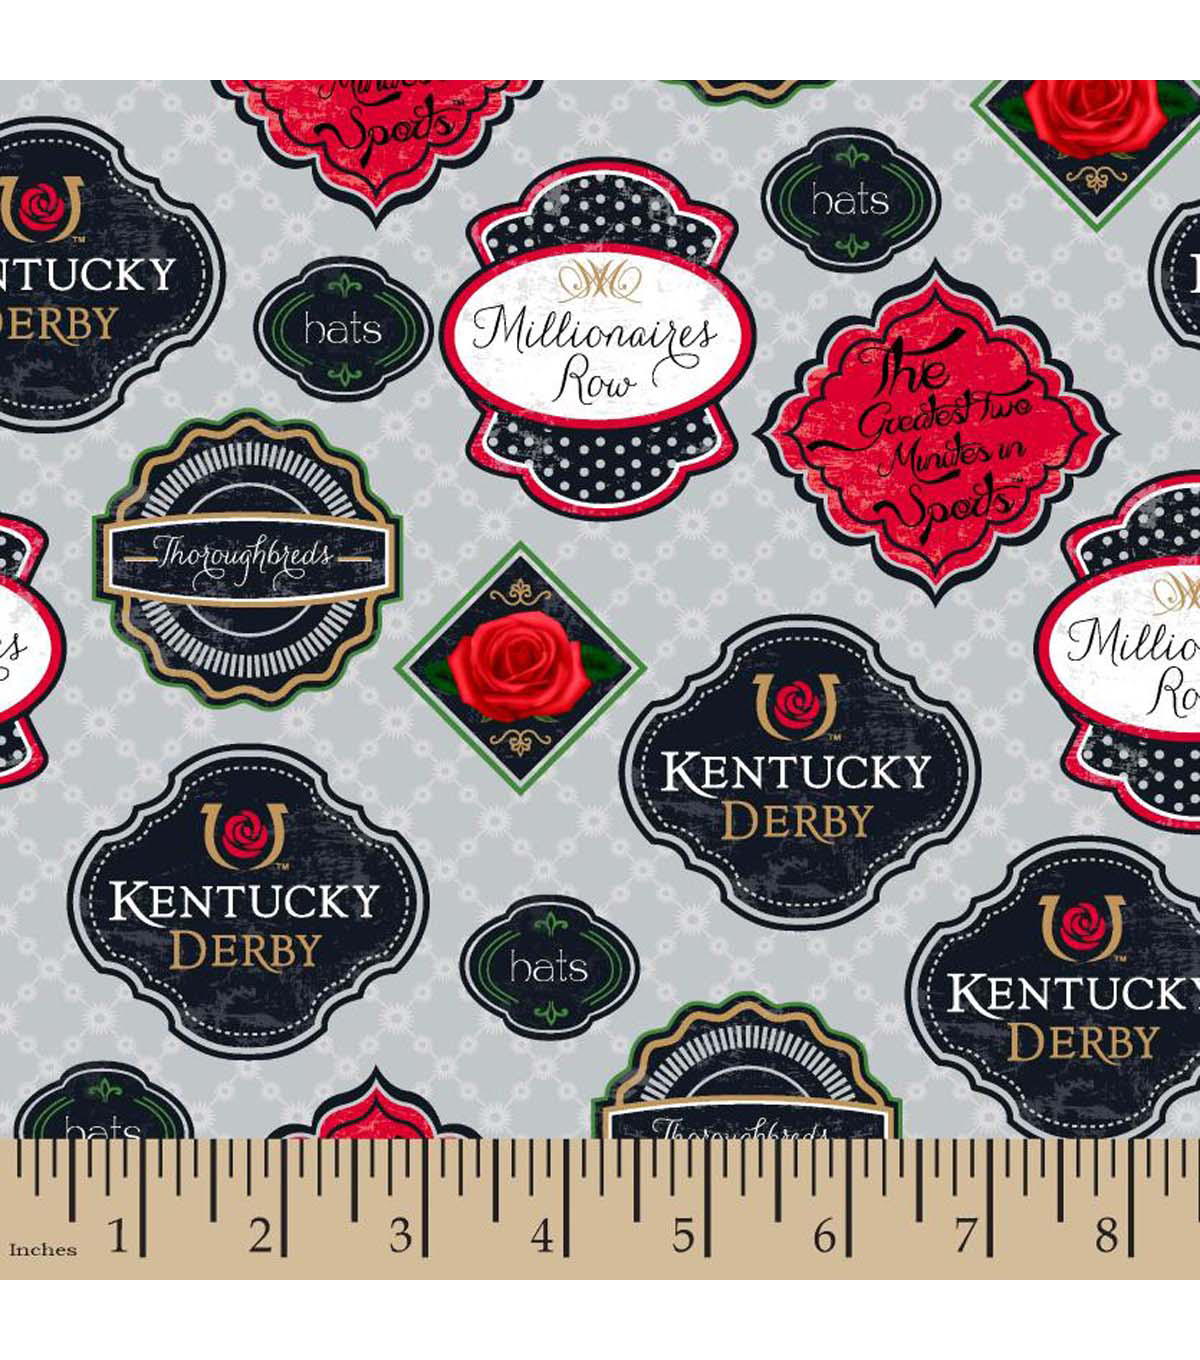 Kentucky Derby Badges Cotton Fabric